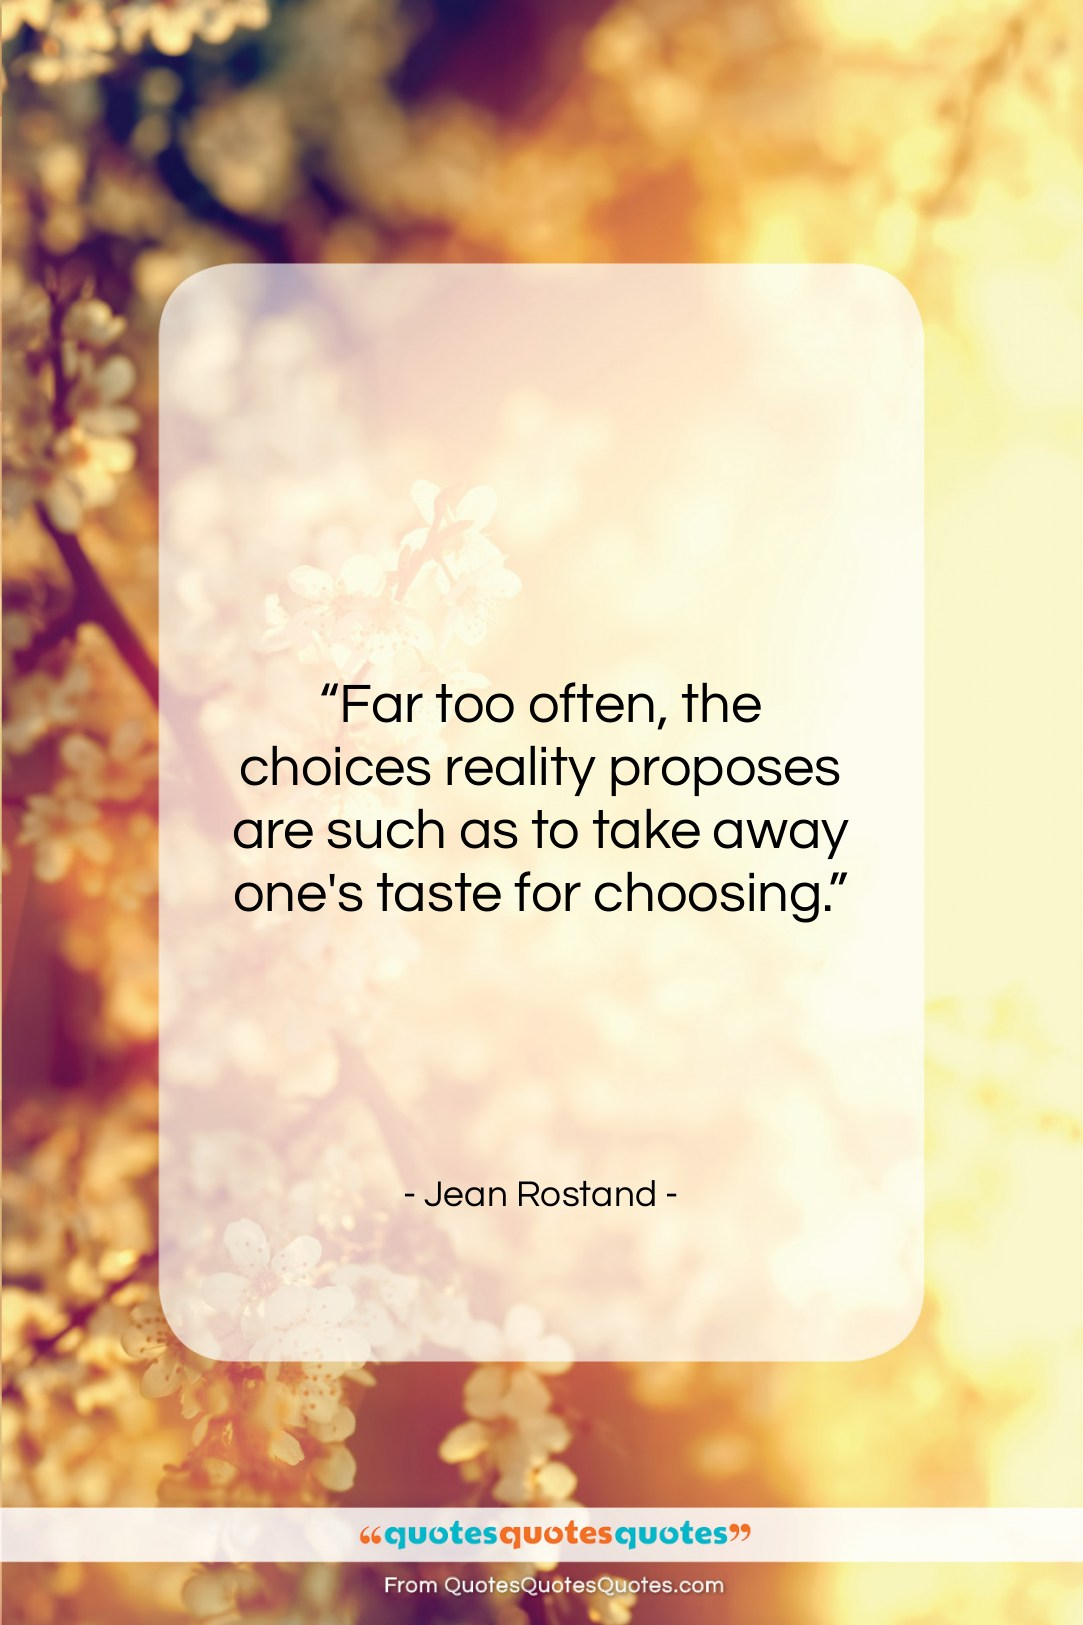 """Jean Rostand quote: """"Far too often, the choices reality proposes…""""- at QuotesQuotesQuotes.com"""